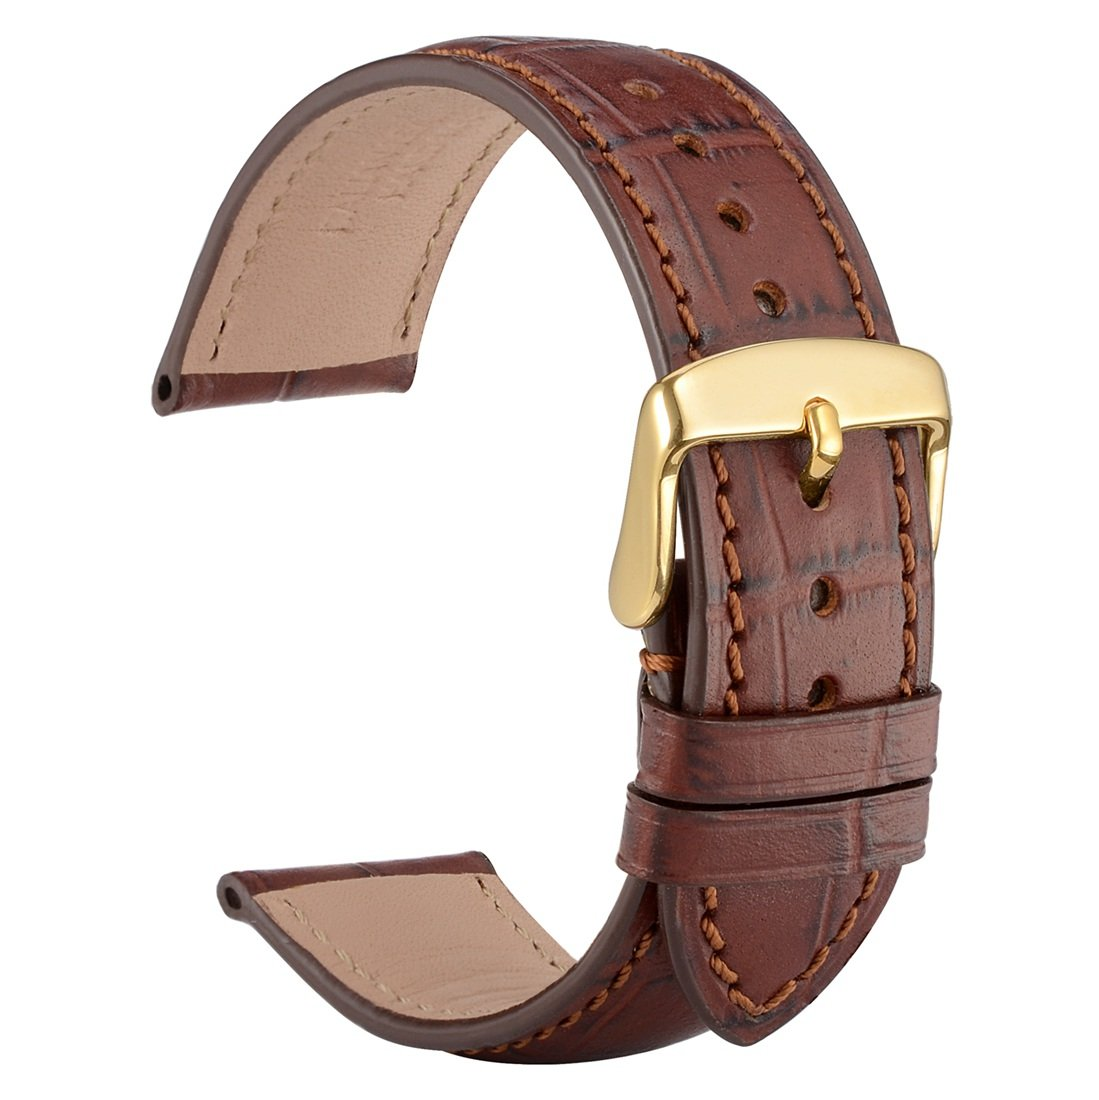 WOCCI 18mm Alligator Embossed Leather Watch Band,Brown Replacement Strap with Gold Buckle